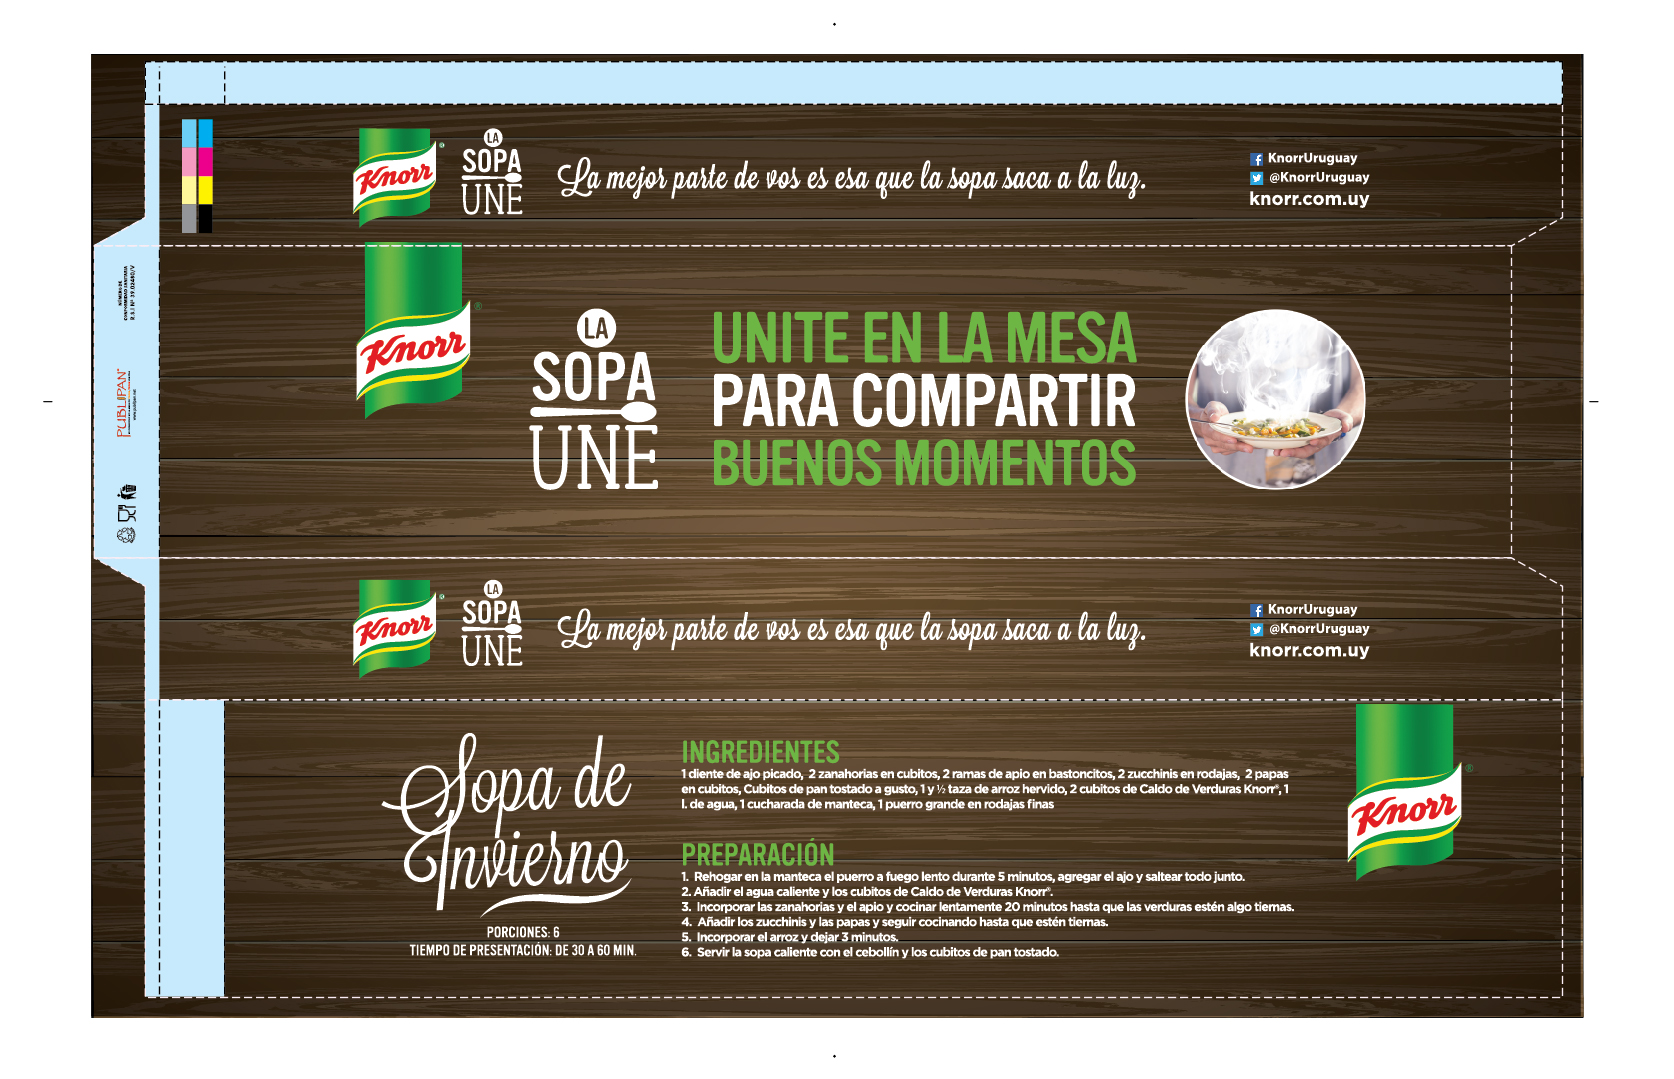 Campaña Knorr 2015